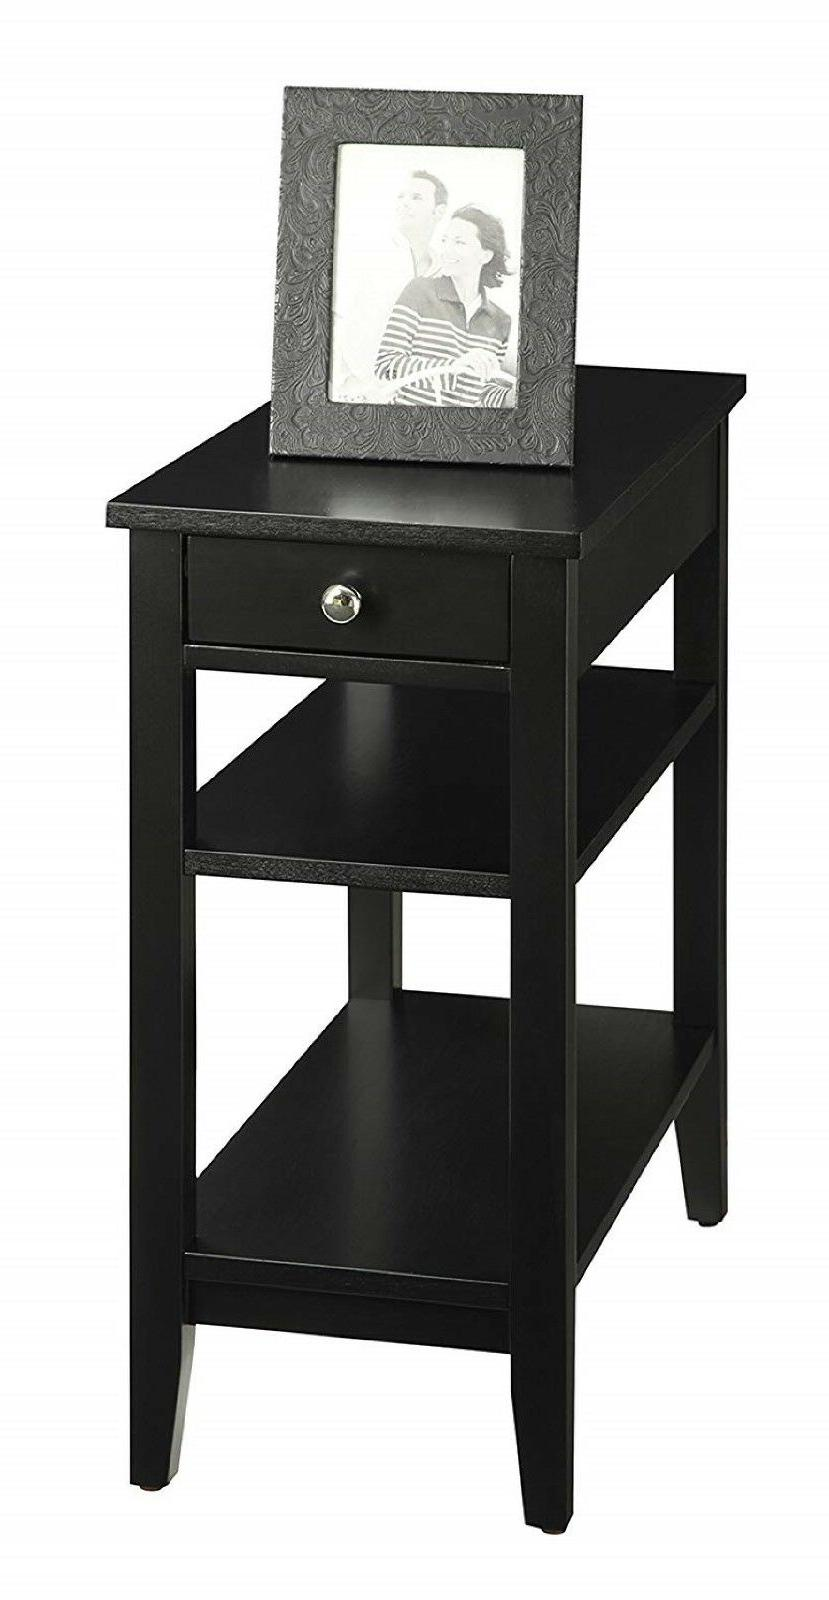 End Storage Drawer Shelves Chair Accent Furniture